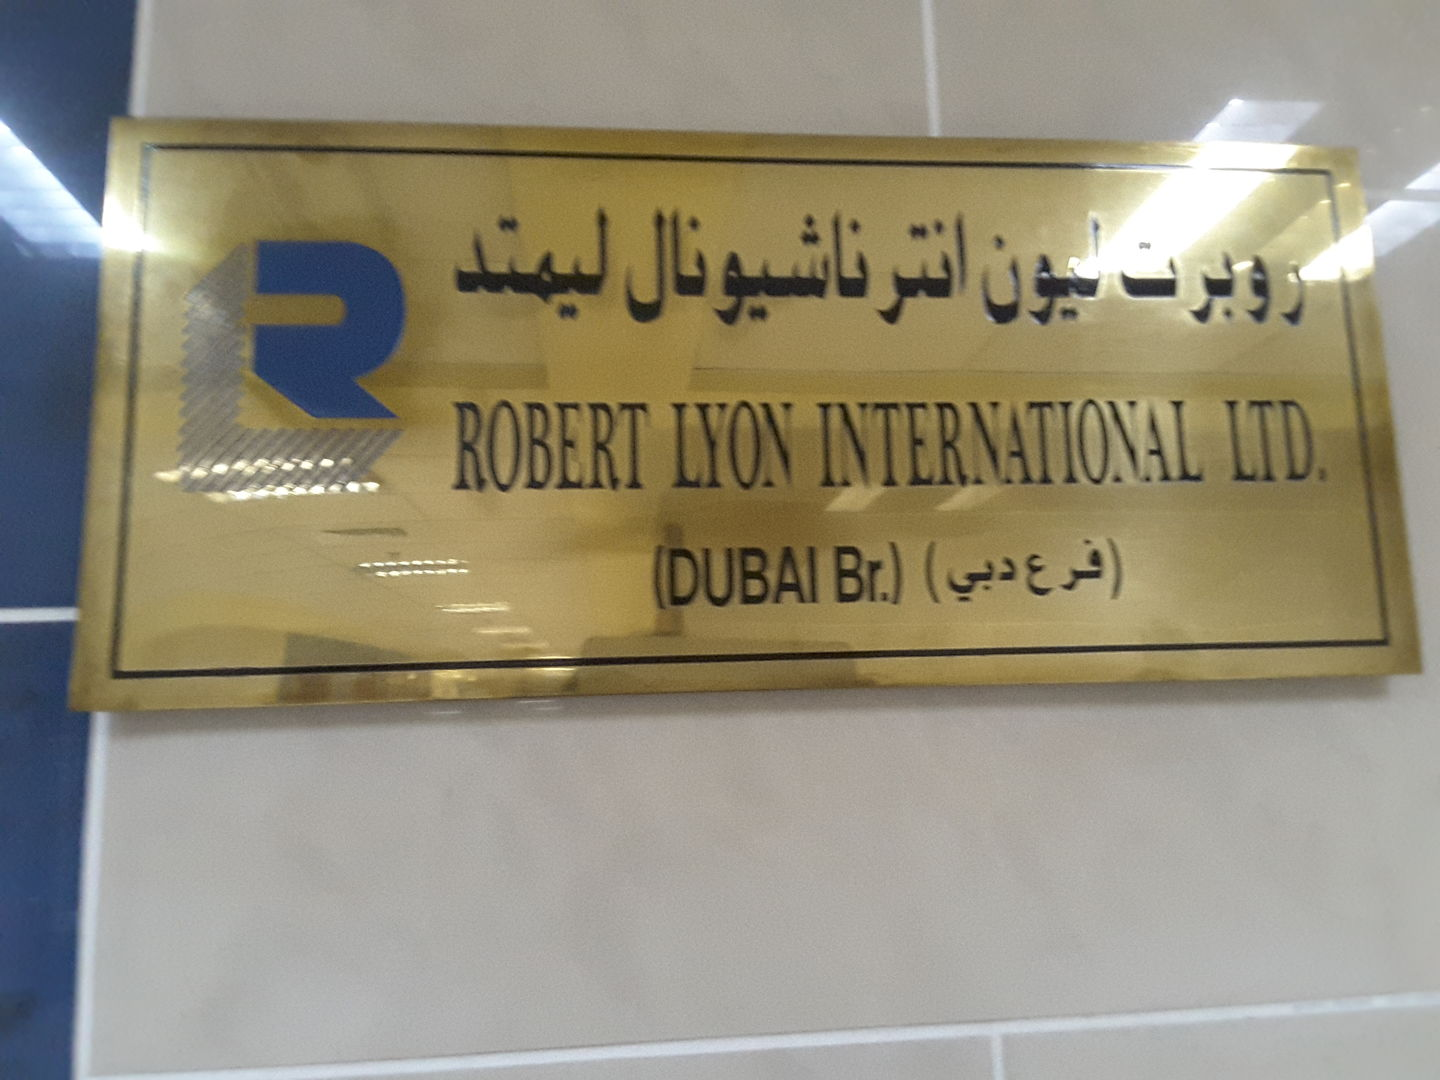 HiDubai-business-robert-lyon-international-finance-legal-financial-services-al-muteena-dubai-2